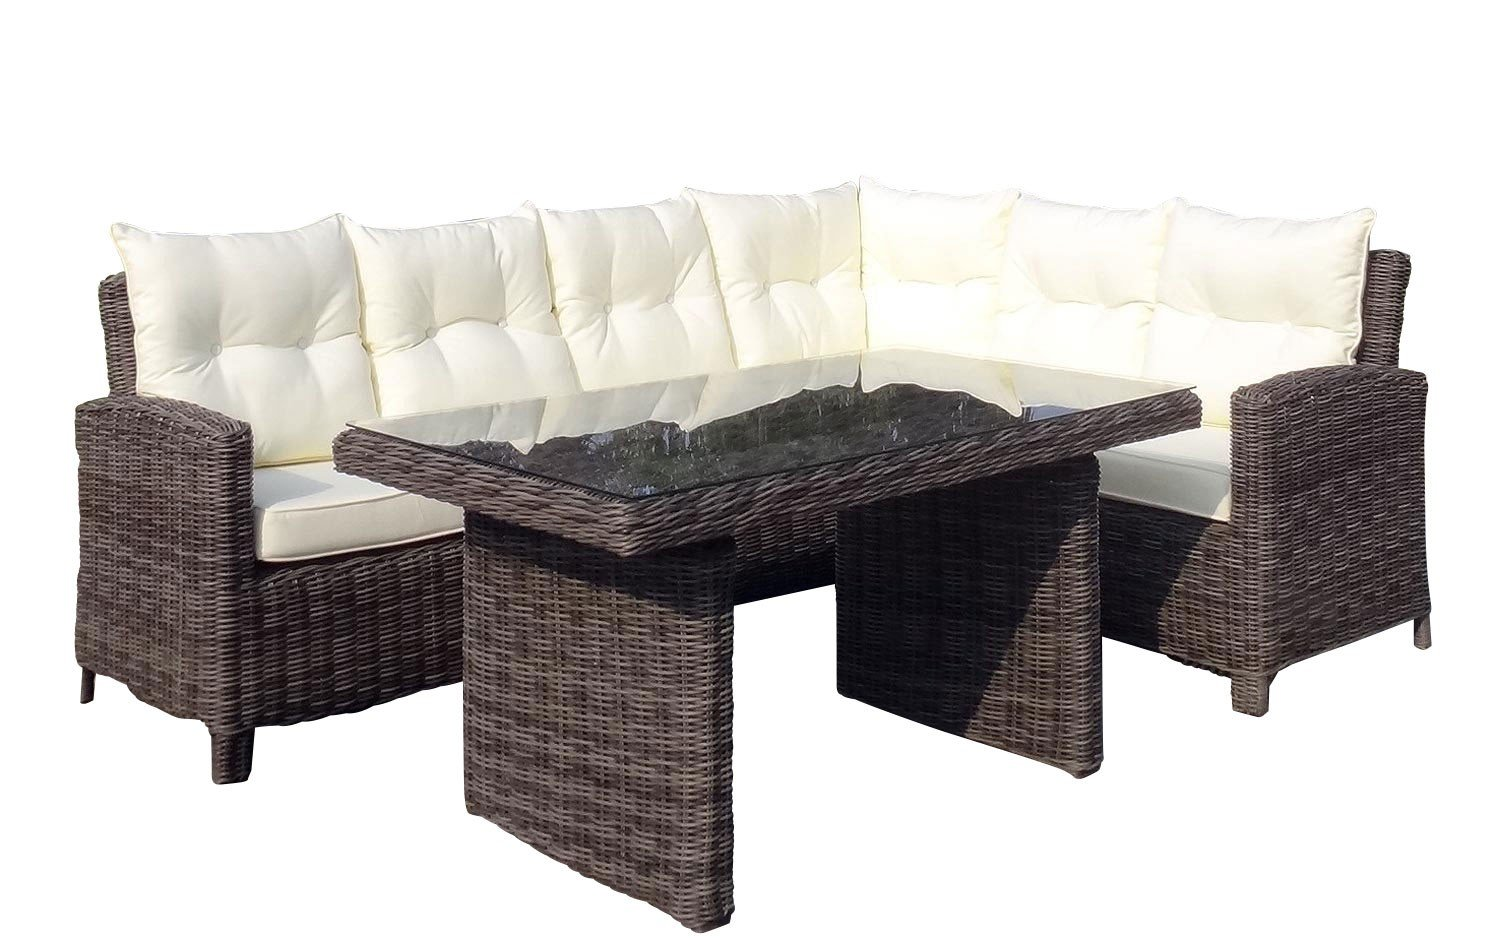 Baidani Rattan Lounge Garnitur Magic aus der Kollektion Ronde